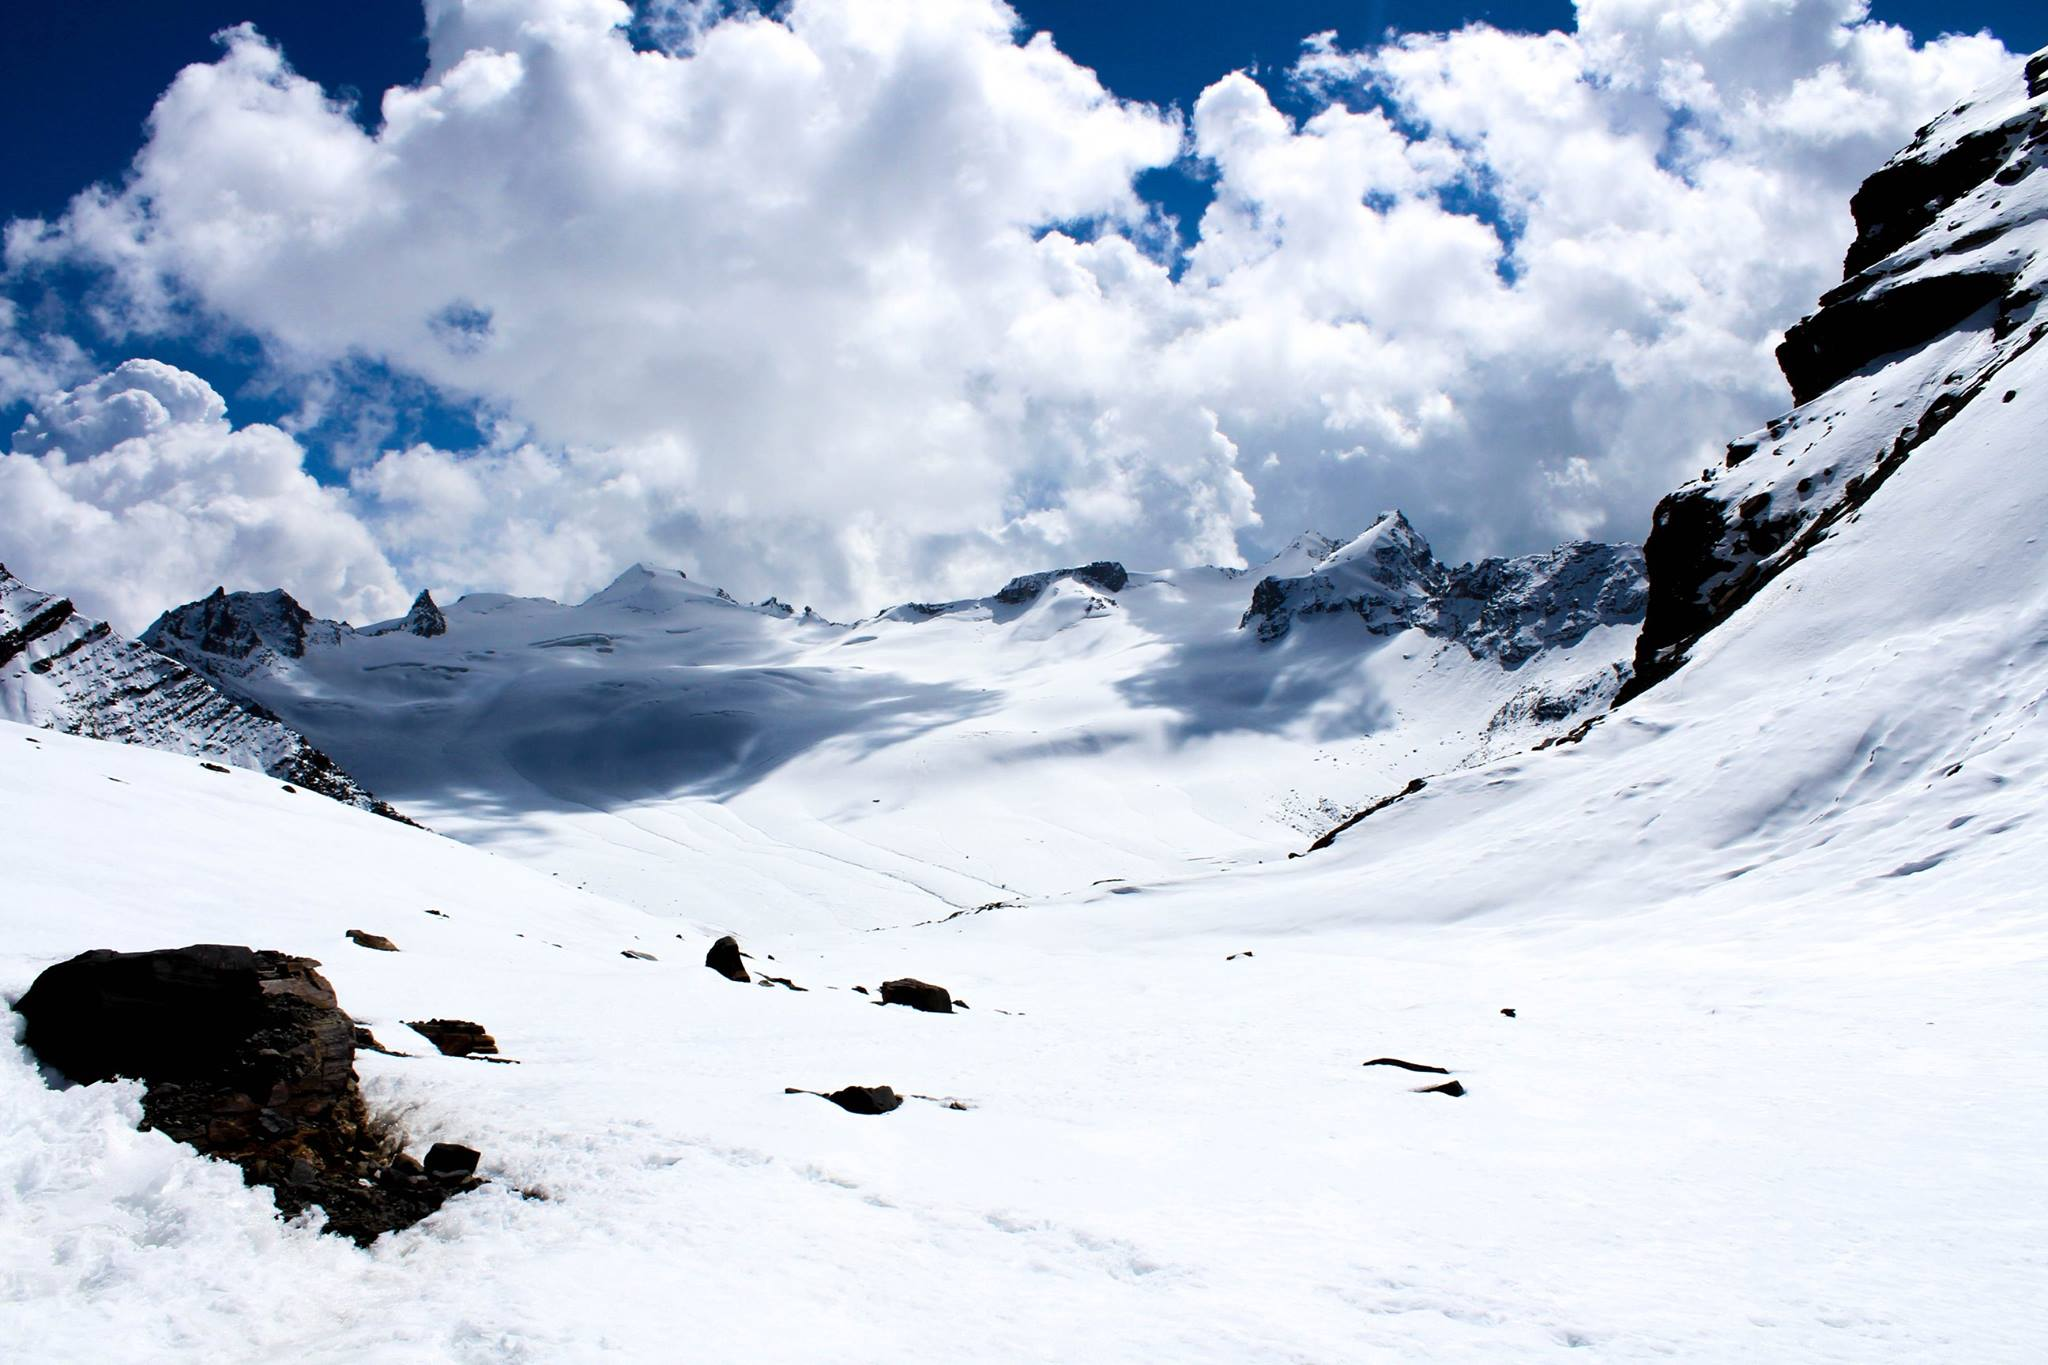 clouds hovereing over the snow covered mountains with bule sky, enroute pin valley